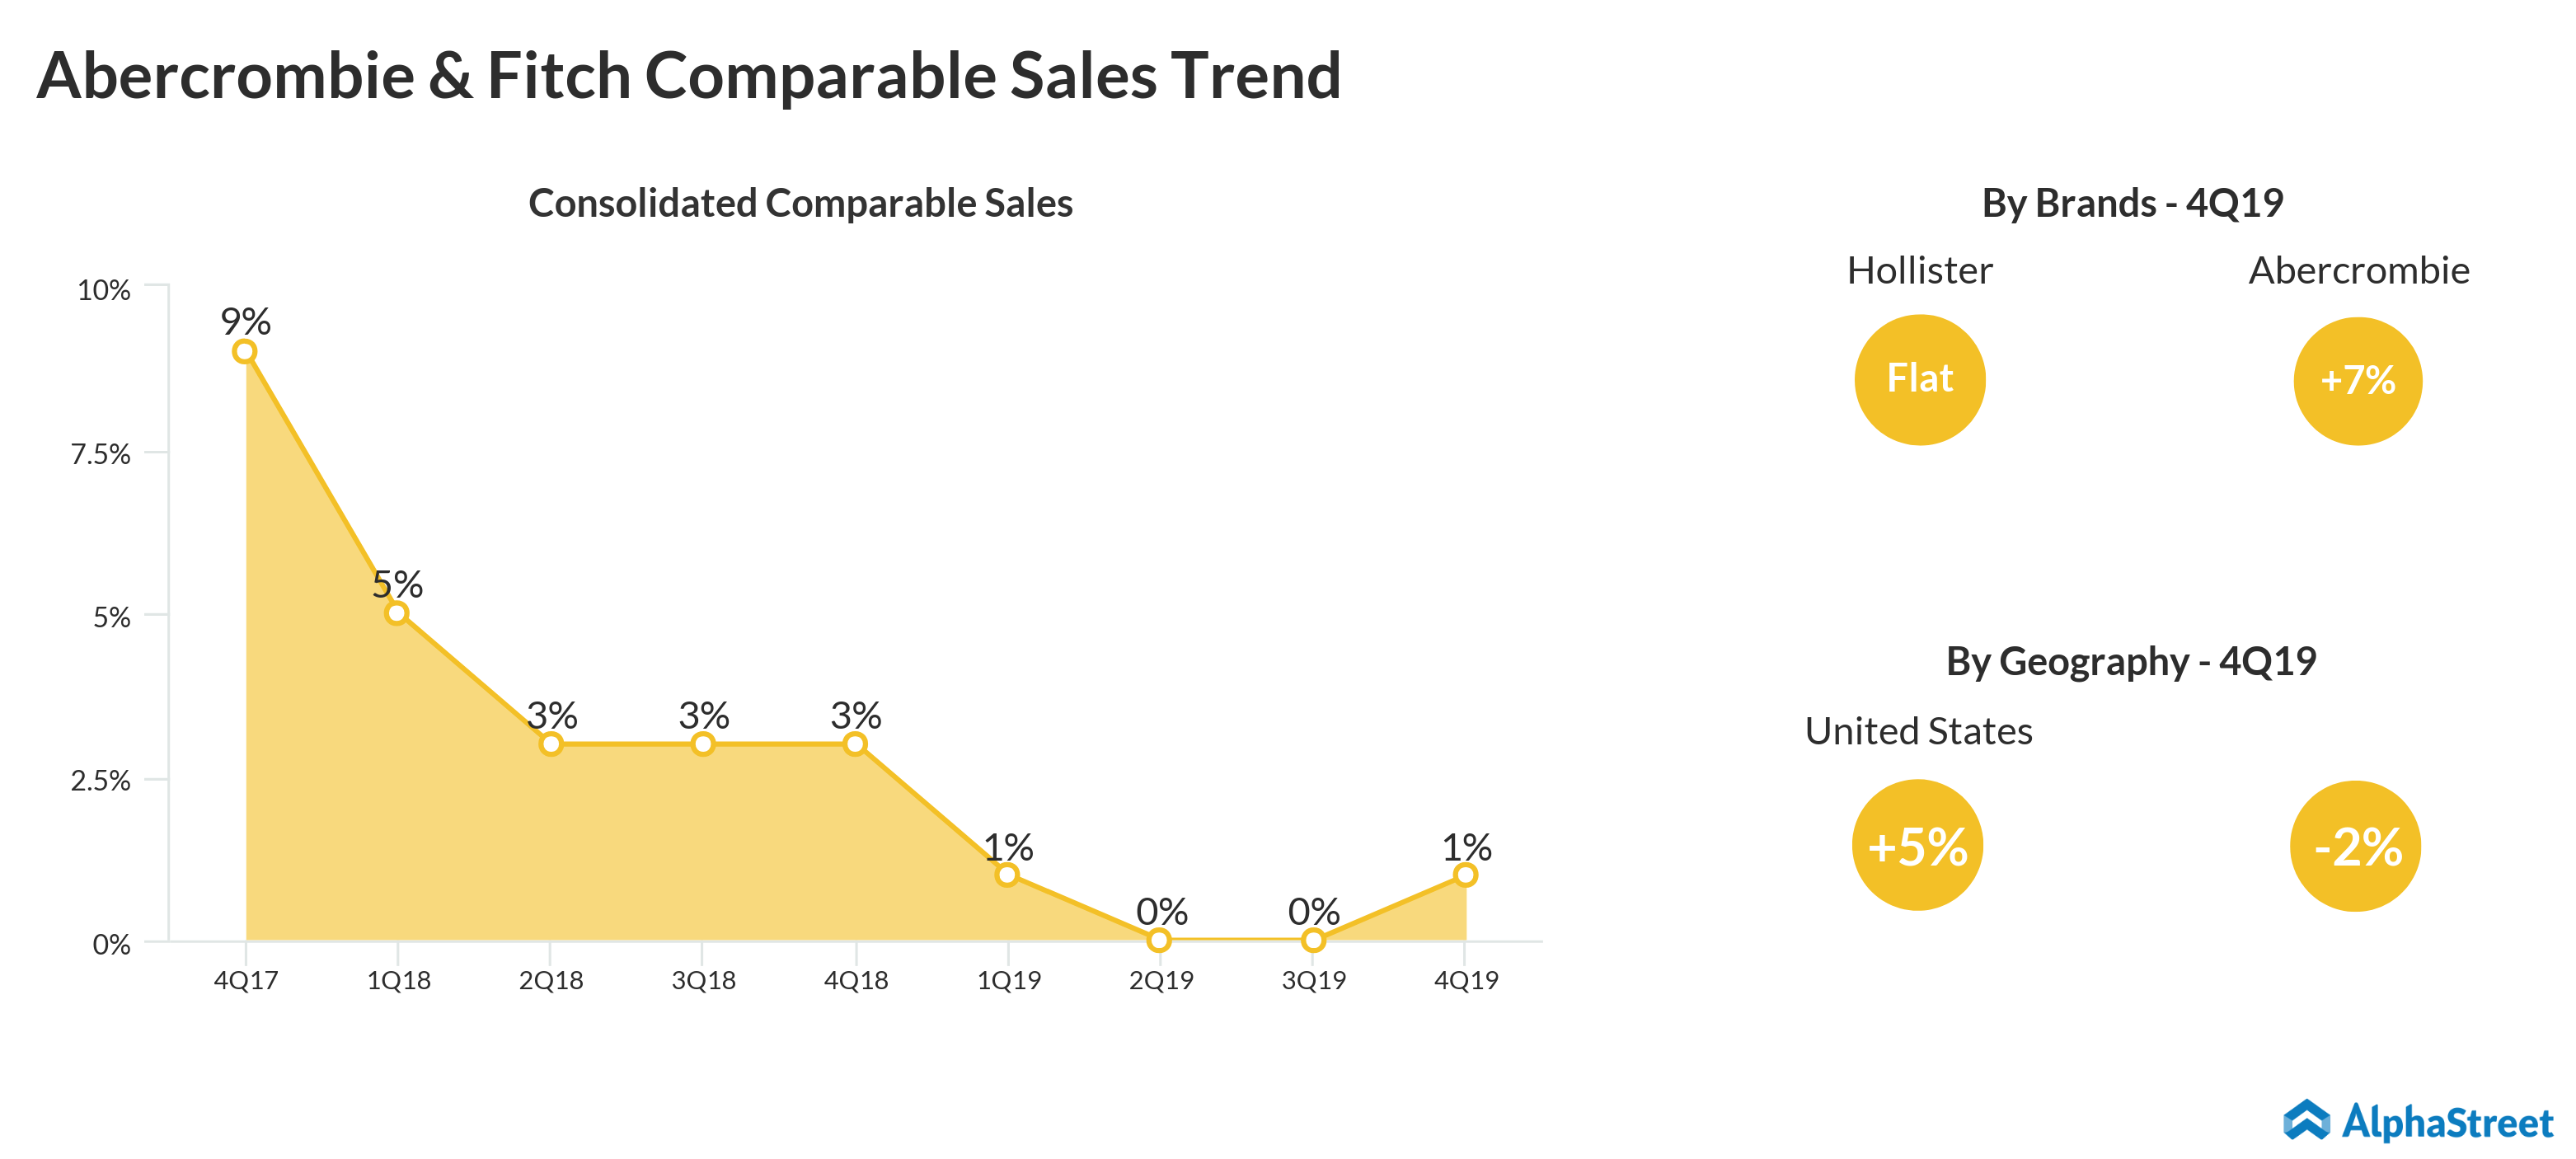 Abercrombie & Fitch Comparable Sales Trend